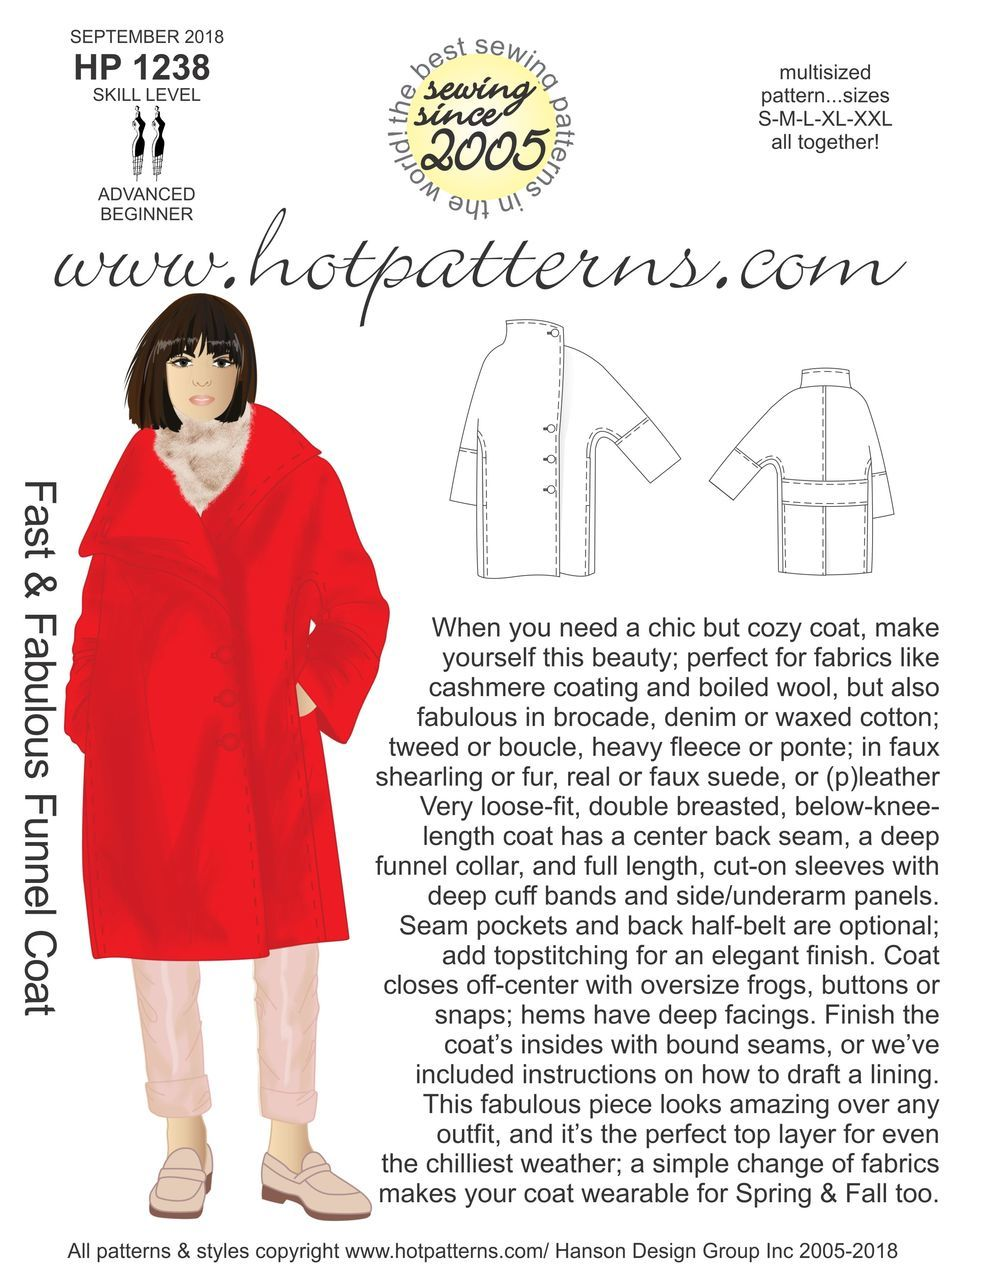 New from Hot Patterns - the Funnel Coat is here!!